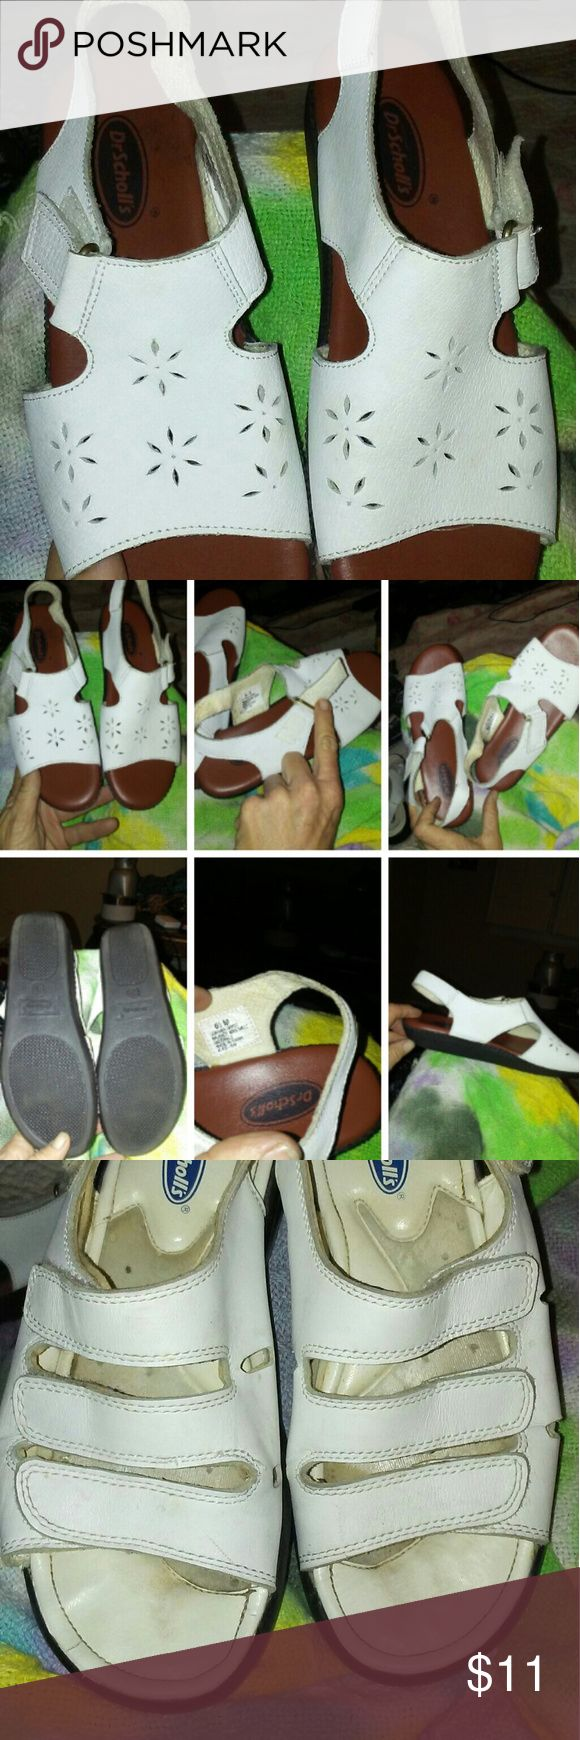 Womens 6 1/2 Dr Scholl's Sandals Dr Scholl's Womens Sandals White,  Size 6 1/2. Velcro top fasten strap. Gently Pre-owned showing no ware.       Very clean and lint free velcro.  Soles have no ware. #Drscholl's #drschollssandals #womenssandal Dr. Scholl's Shoes Sandals